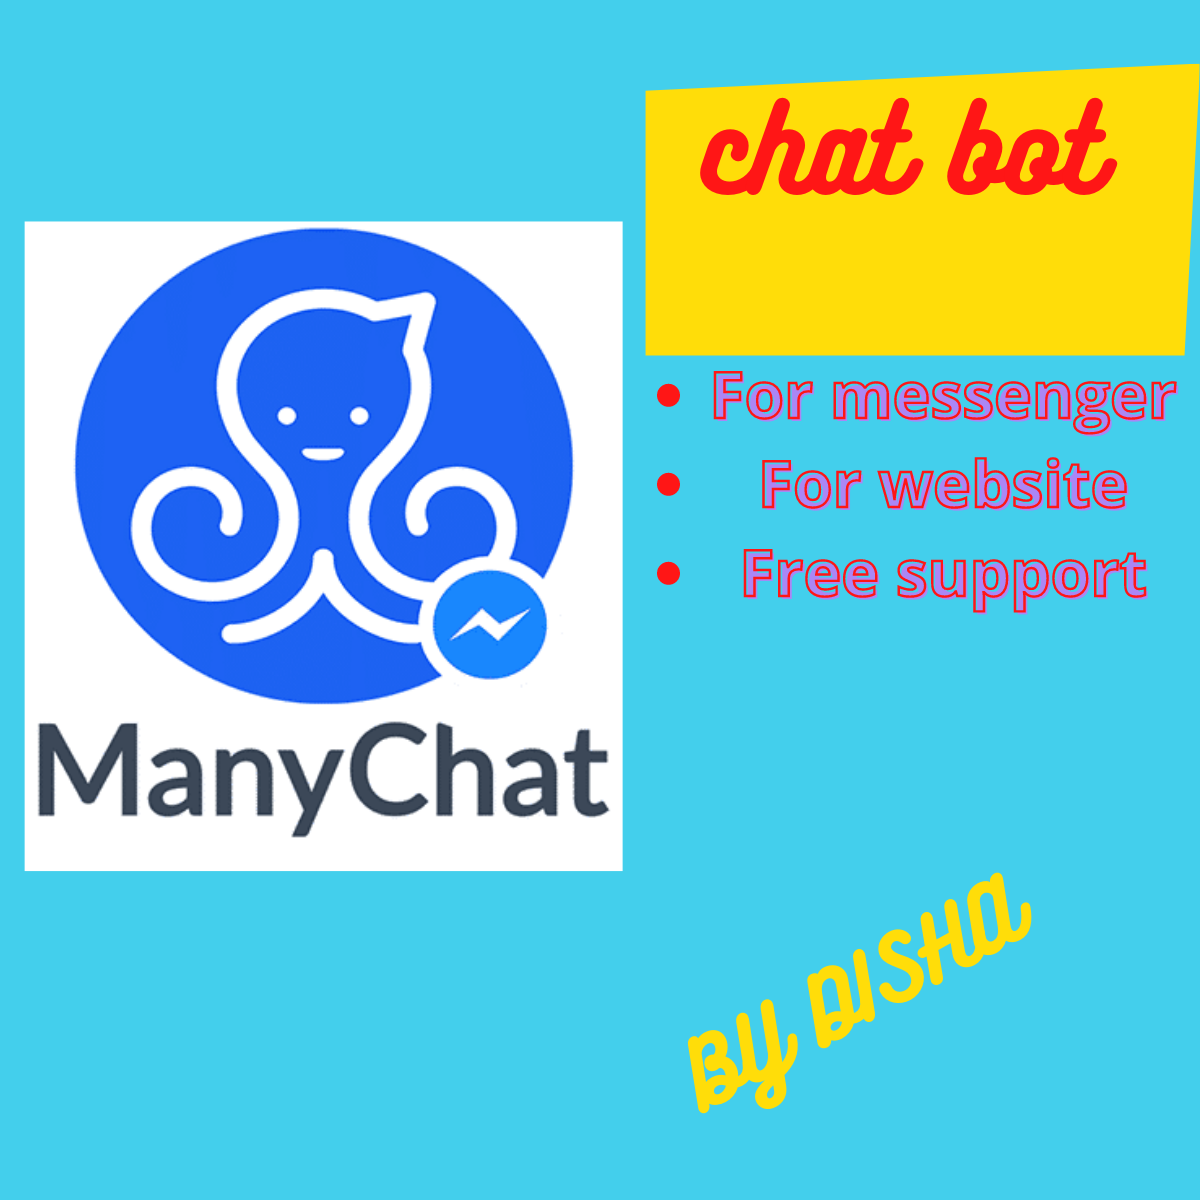 I will create chatbot for messenger,  website using manychat